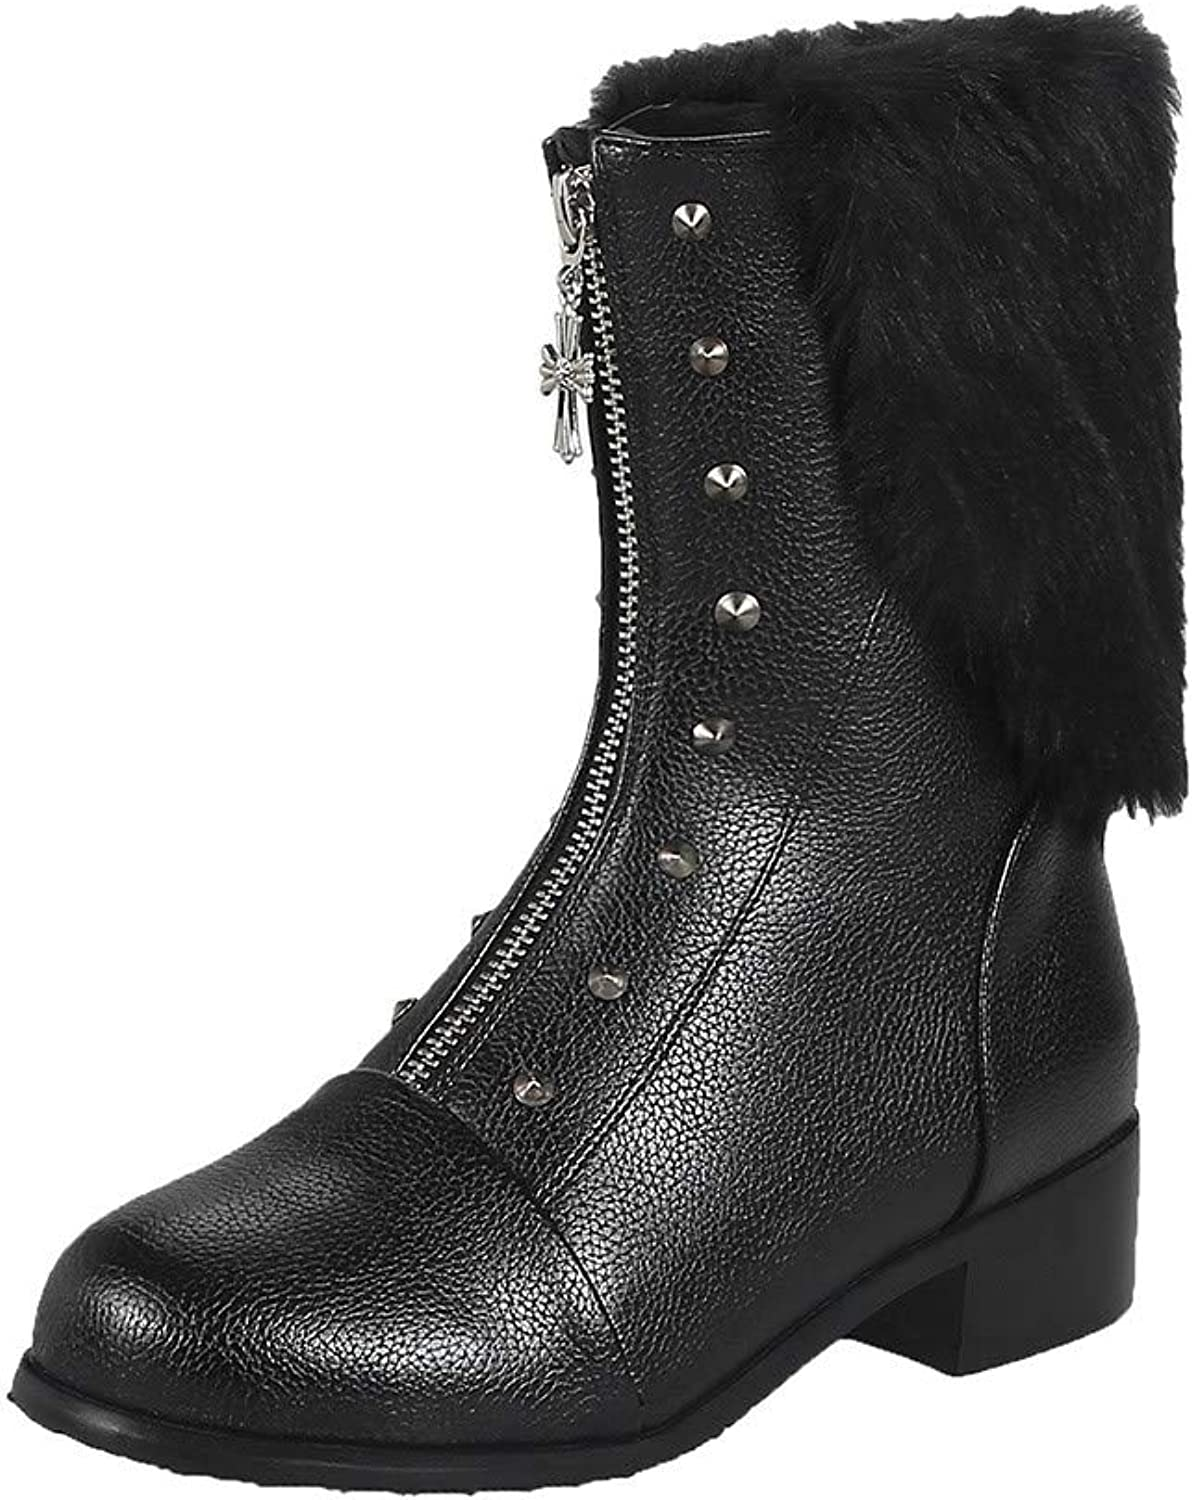 Clearance Womens Boots,Realdo Women Solid Mid Heel Platform Leather Warm Martin Boot